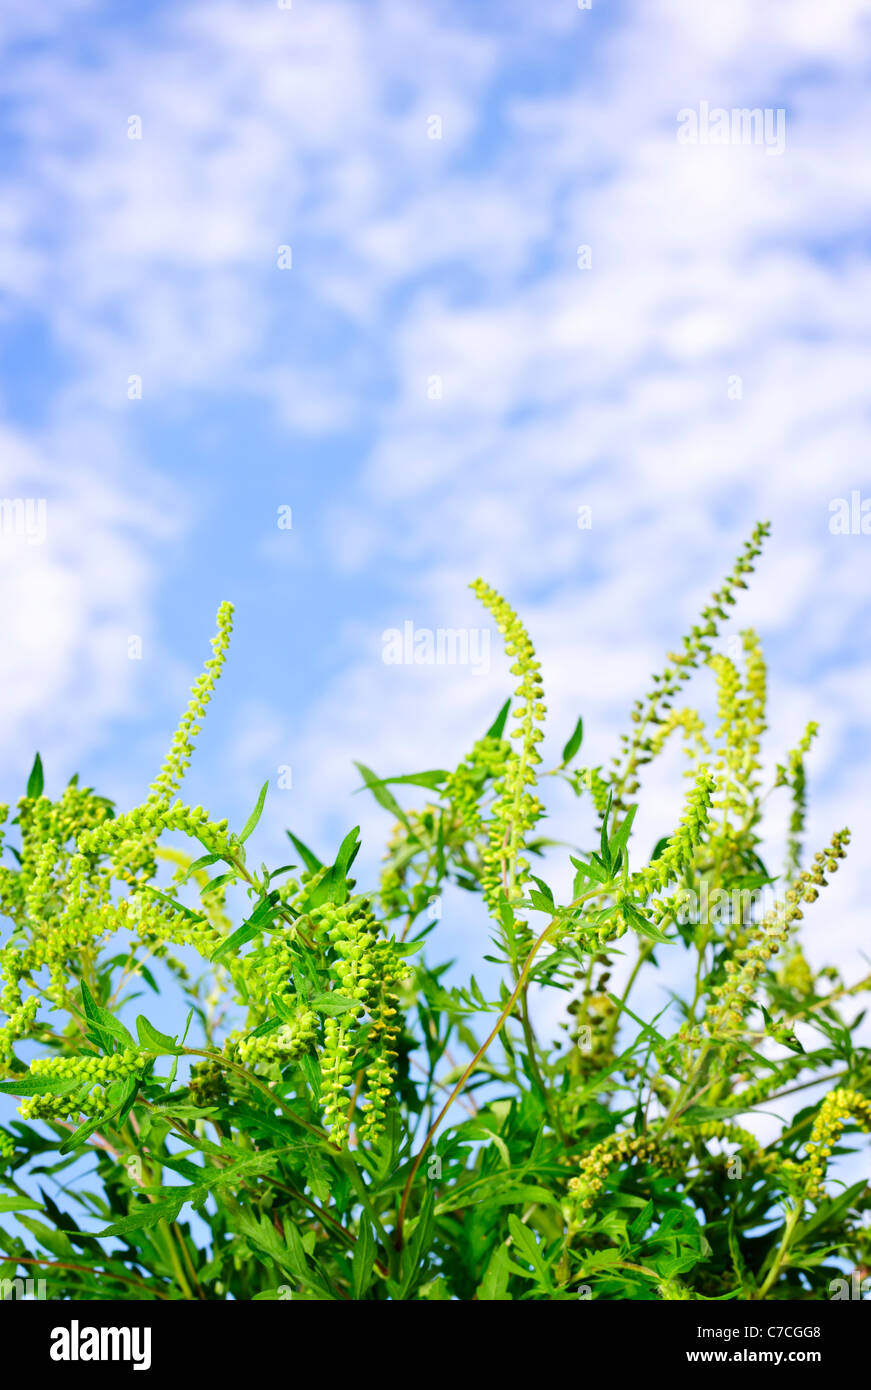 Flowering ragweed plant in closeup against blue sky, a common allergen Stock Photo